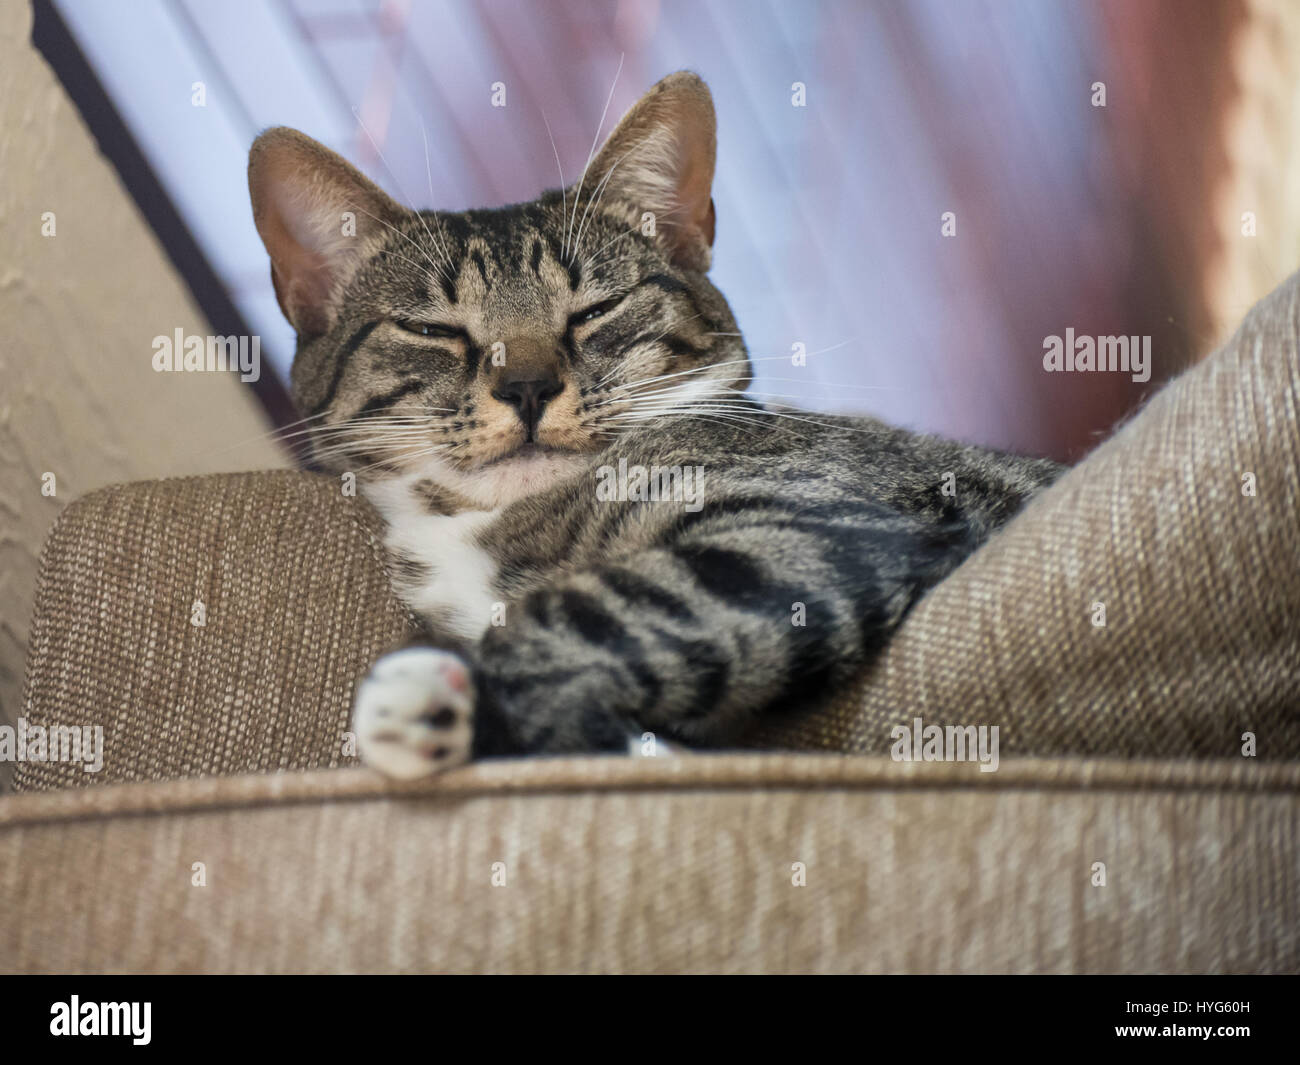 selbstgef llig katze von oben stockfoto bild 137424241 alamy. Black Bedroom Furniture Sets. Home Design Ideas